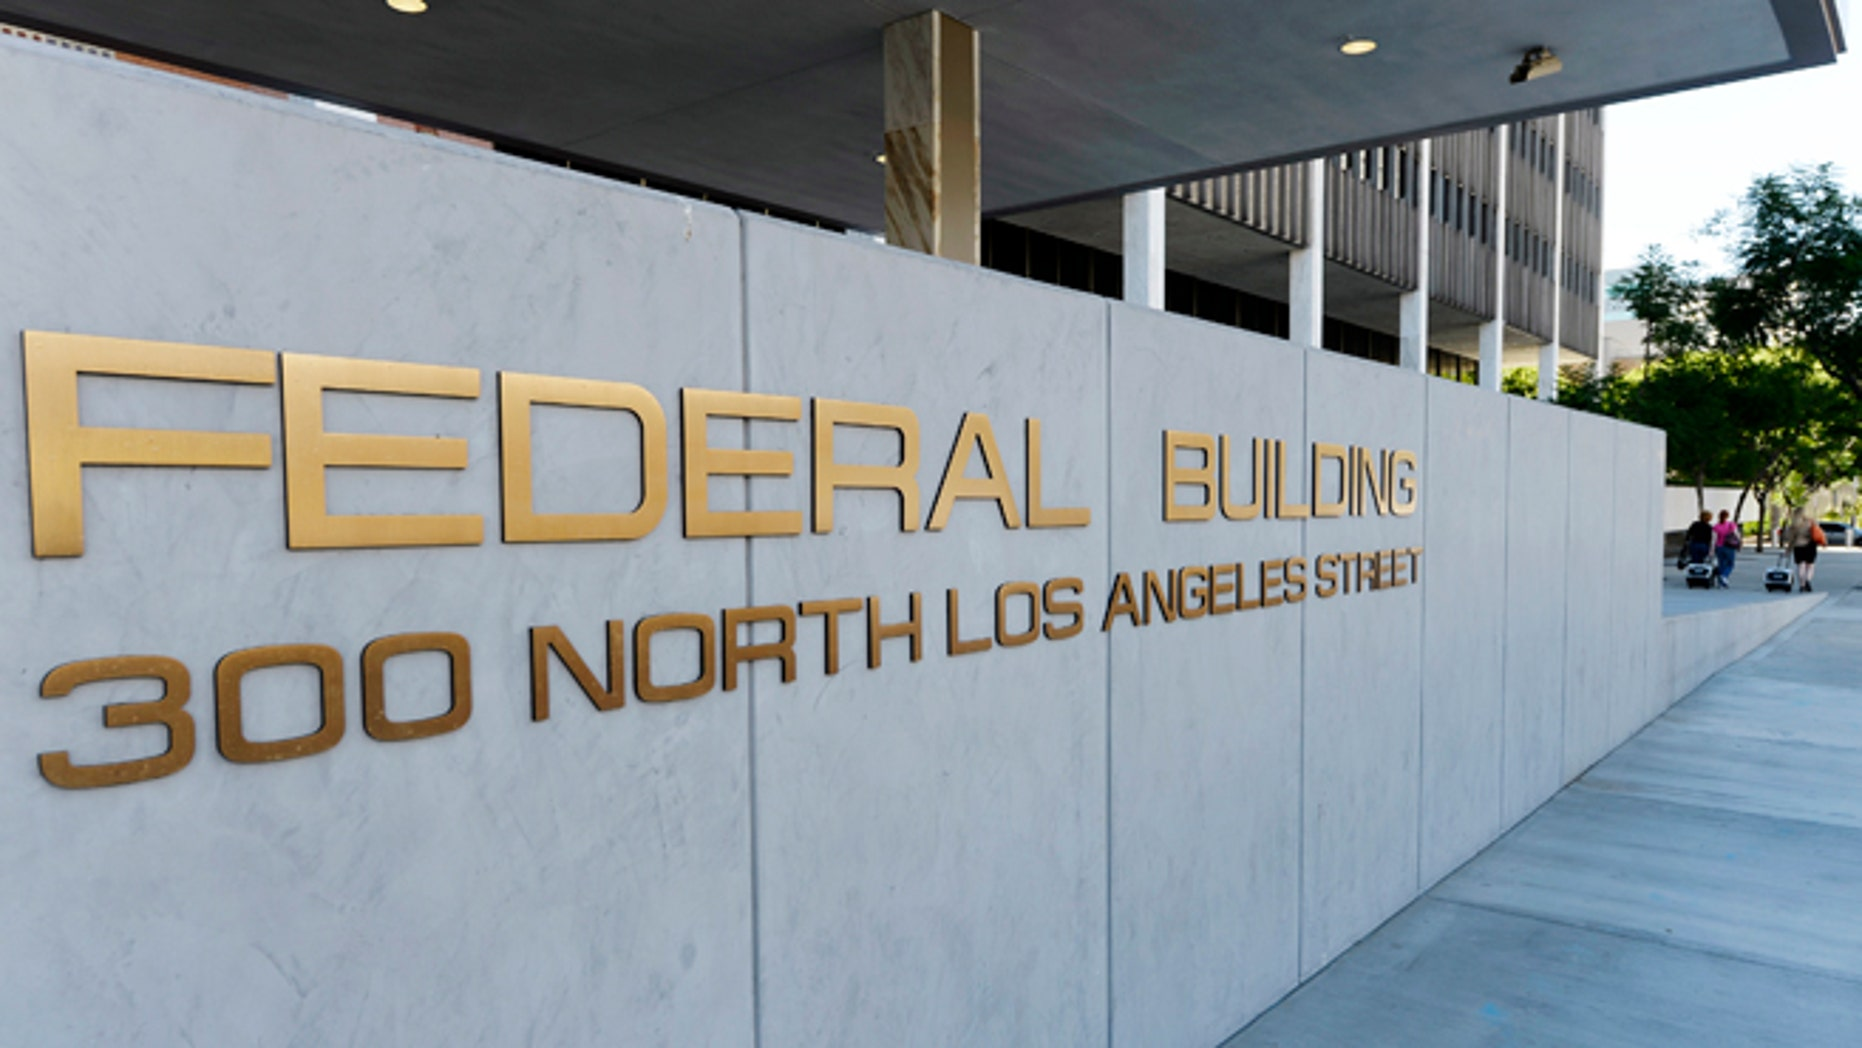 A view shows the sign for the Federal Building, where the Internal Revenue Service (IRS) offices are located, in Los Angeles, California.